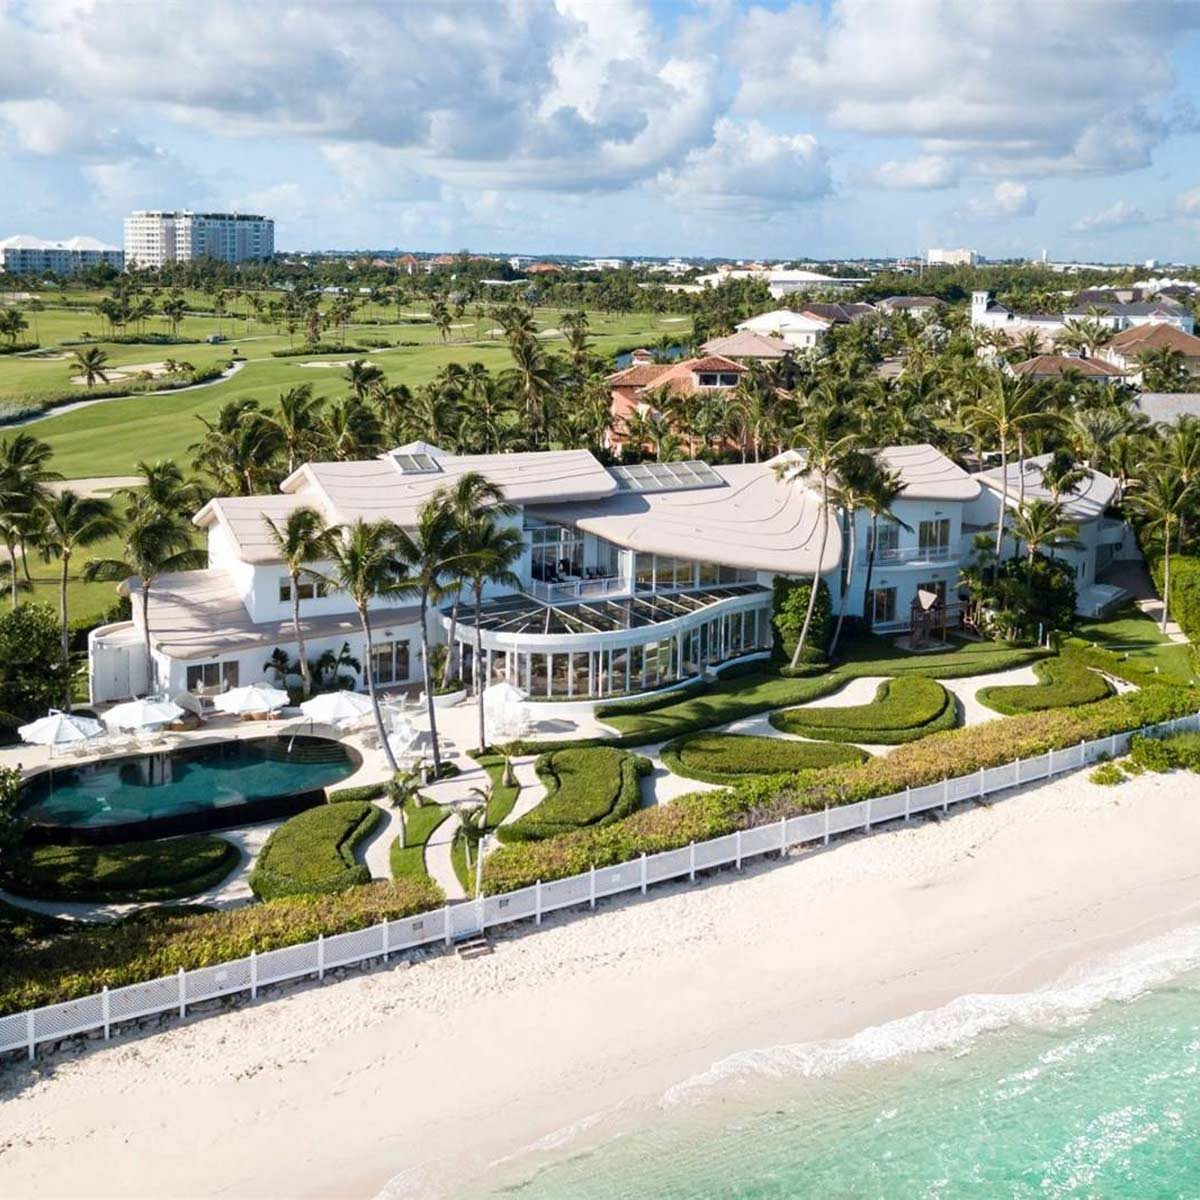 mansion on the ocean with a golf course behind